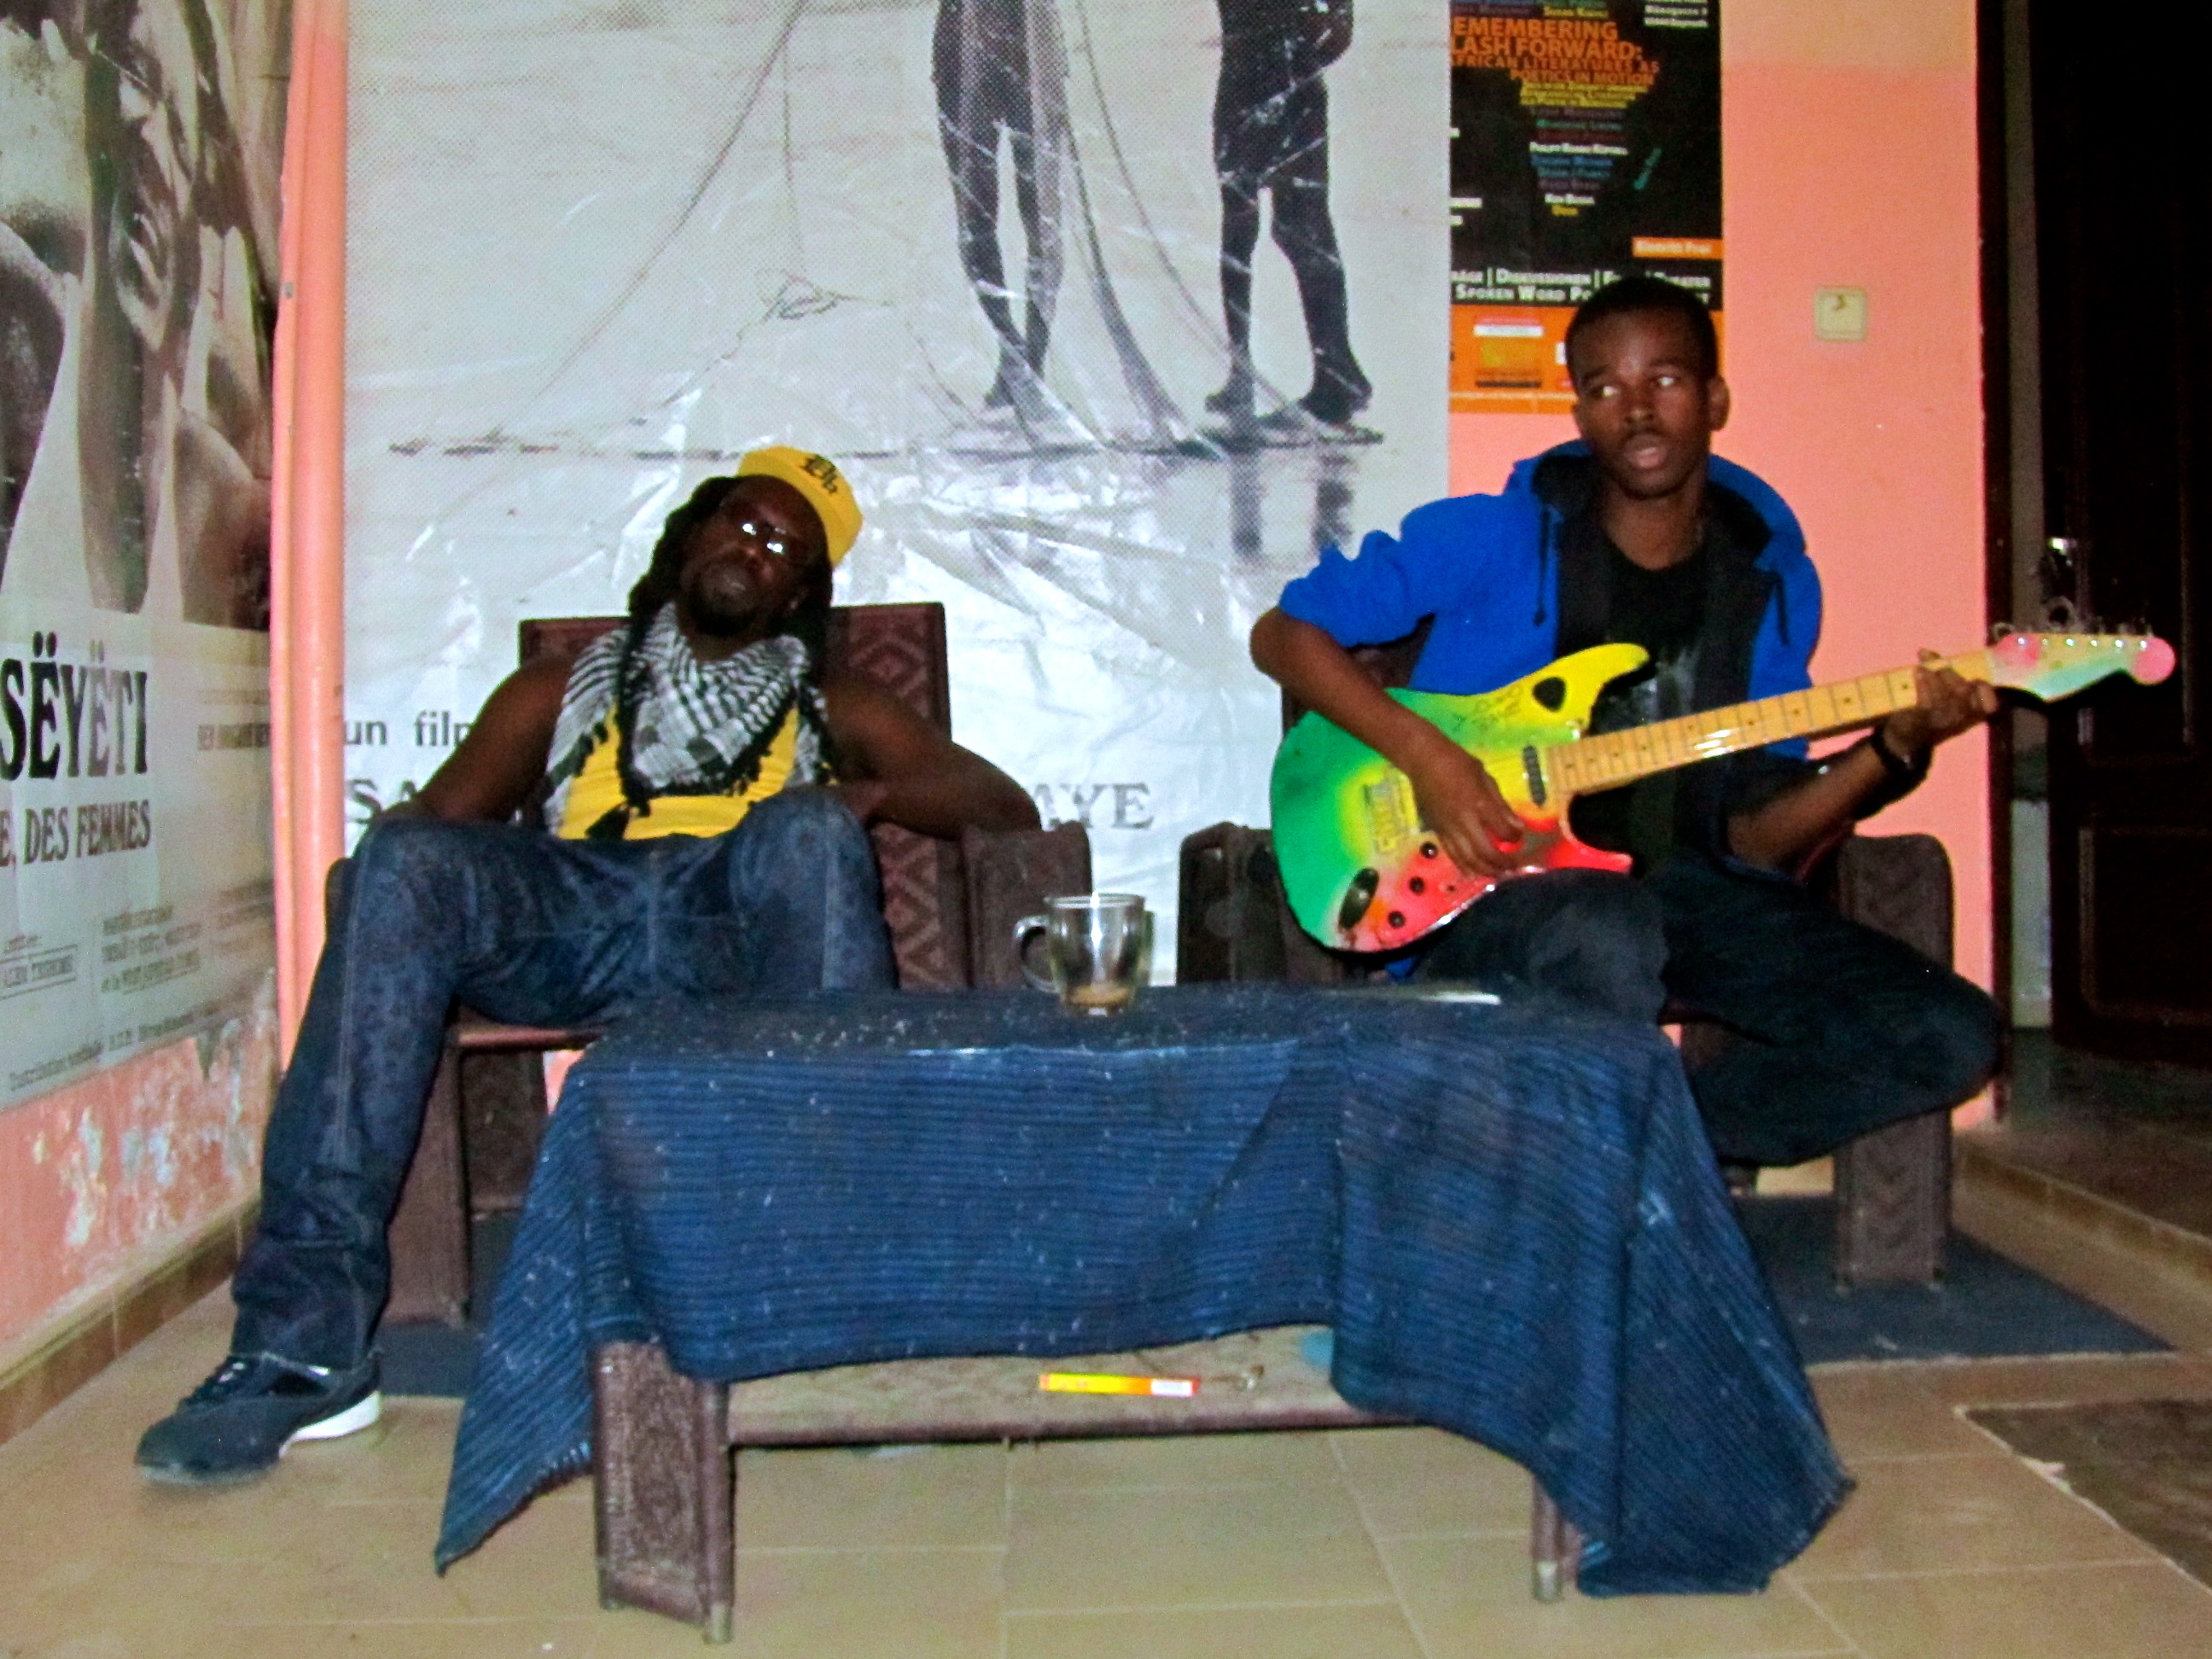 Mo and local singer-songwriter at Bois Sakre studio